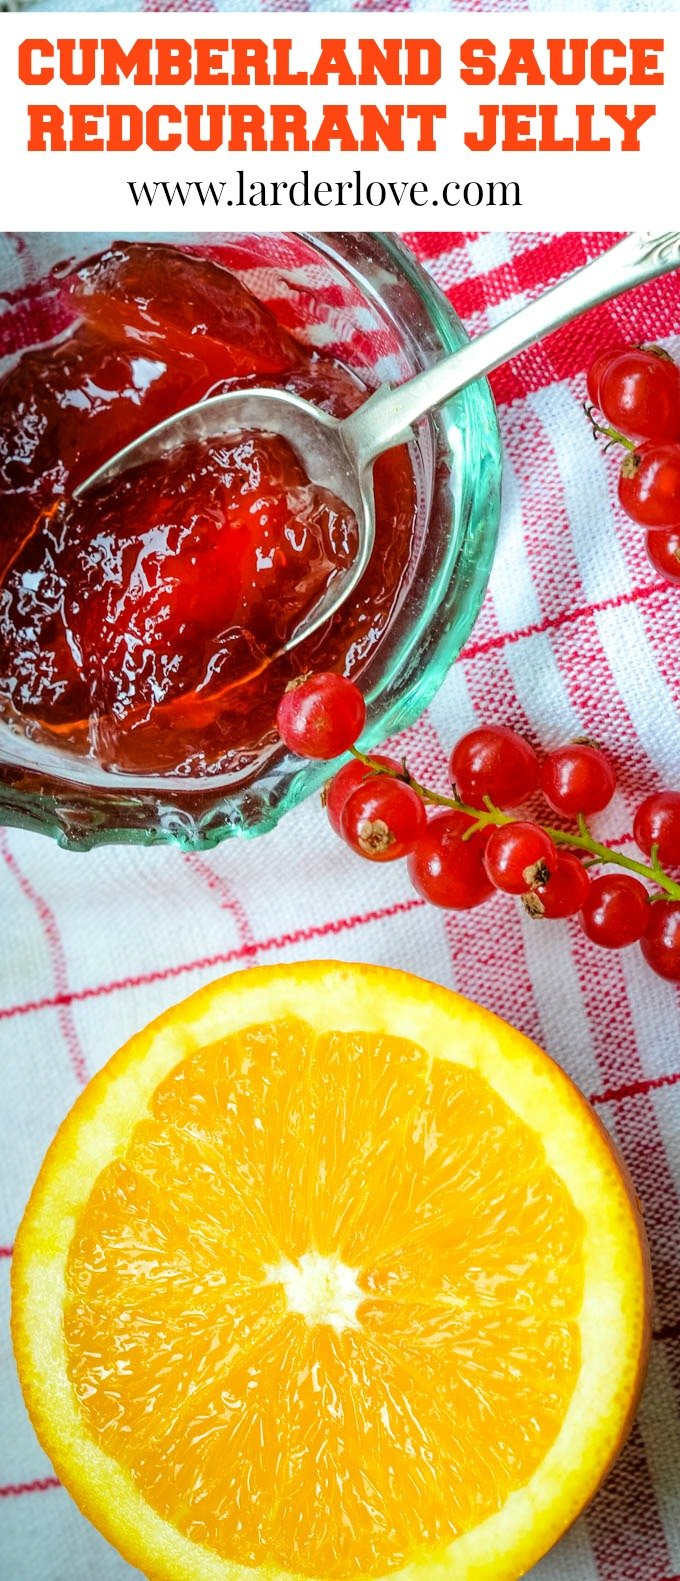 Cumberland Sauce Redcurrant Jelly pin image